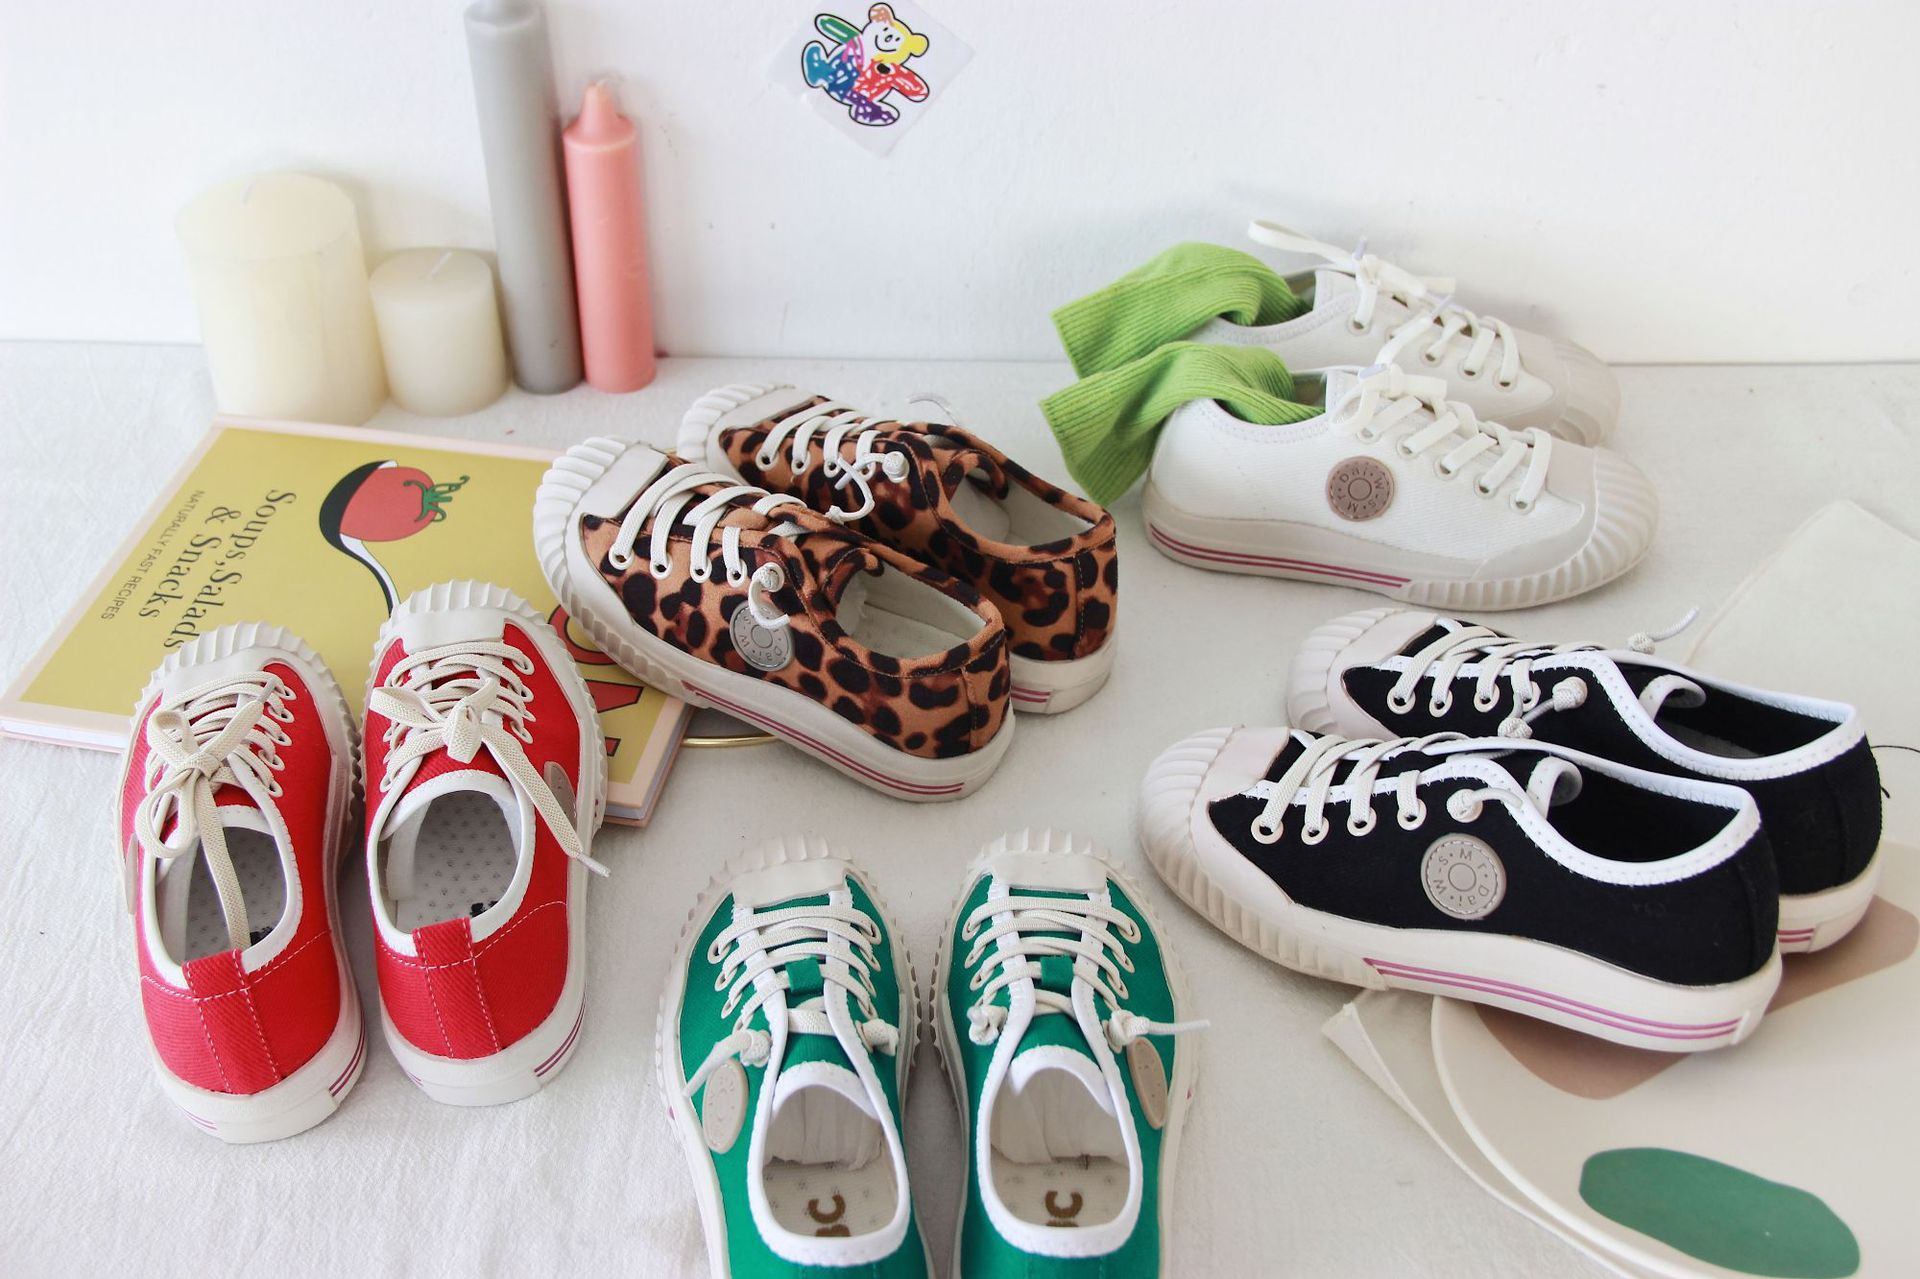 Autumn 2019 Children Leopard Biscuit Leisure Shoes Solid Color Shoes For Boys And Girls Board Shoes Kids All Match Shoes 1-6Y